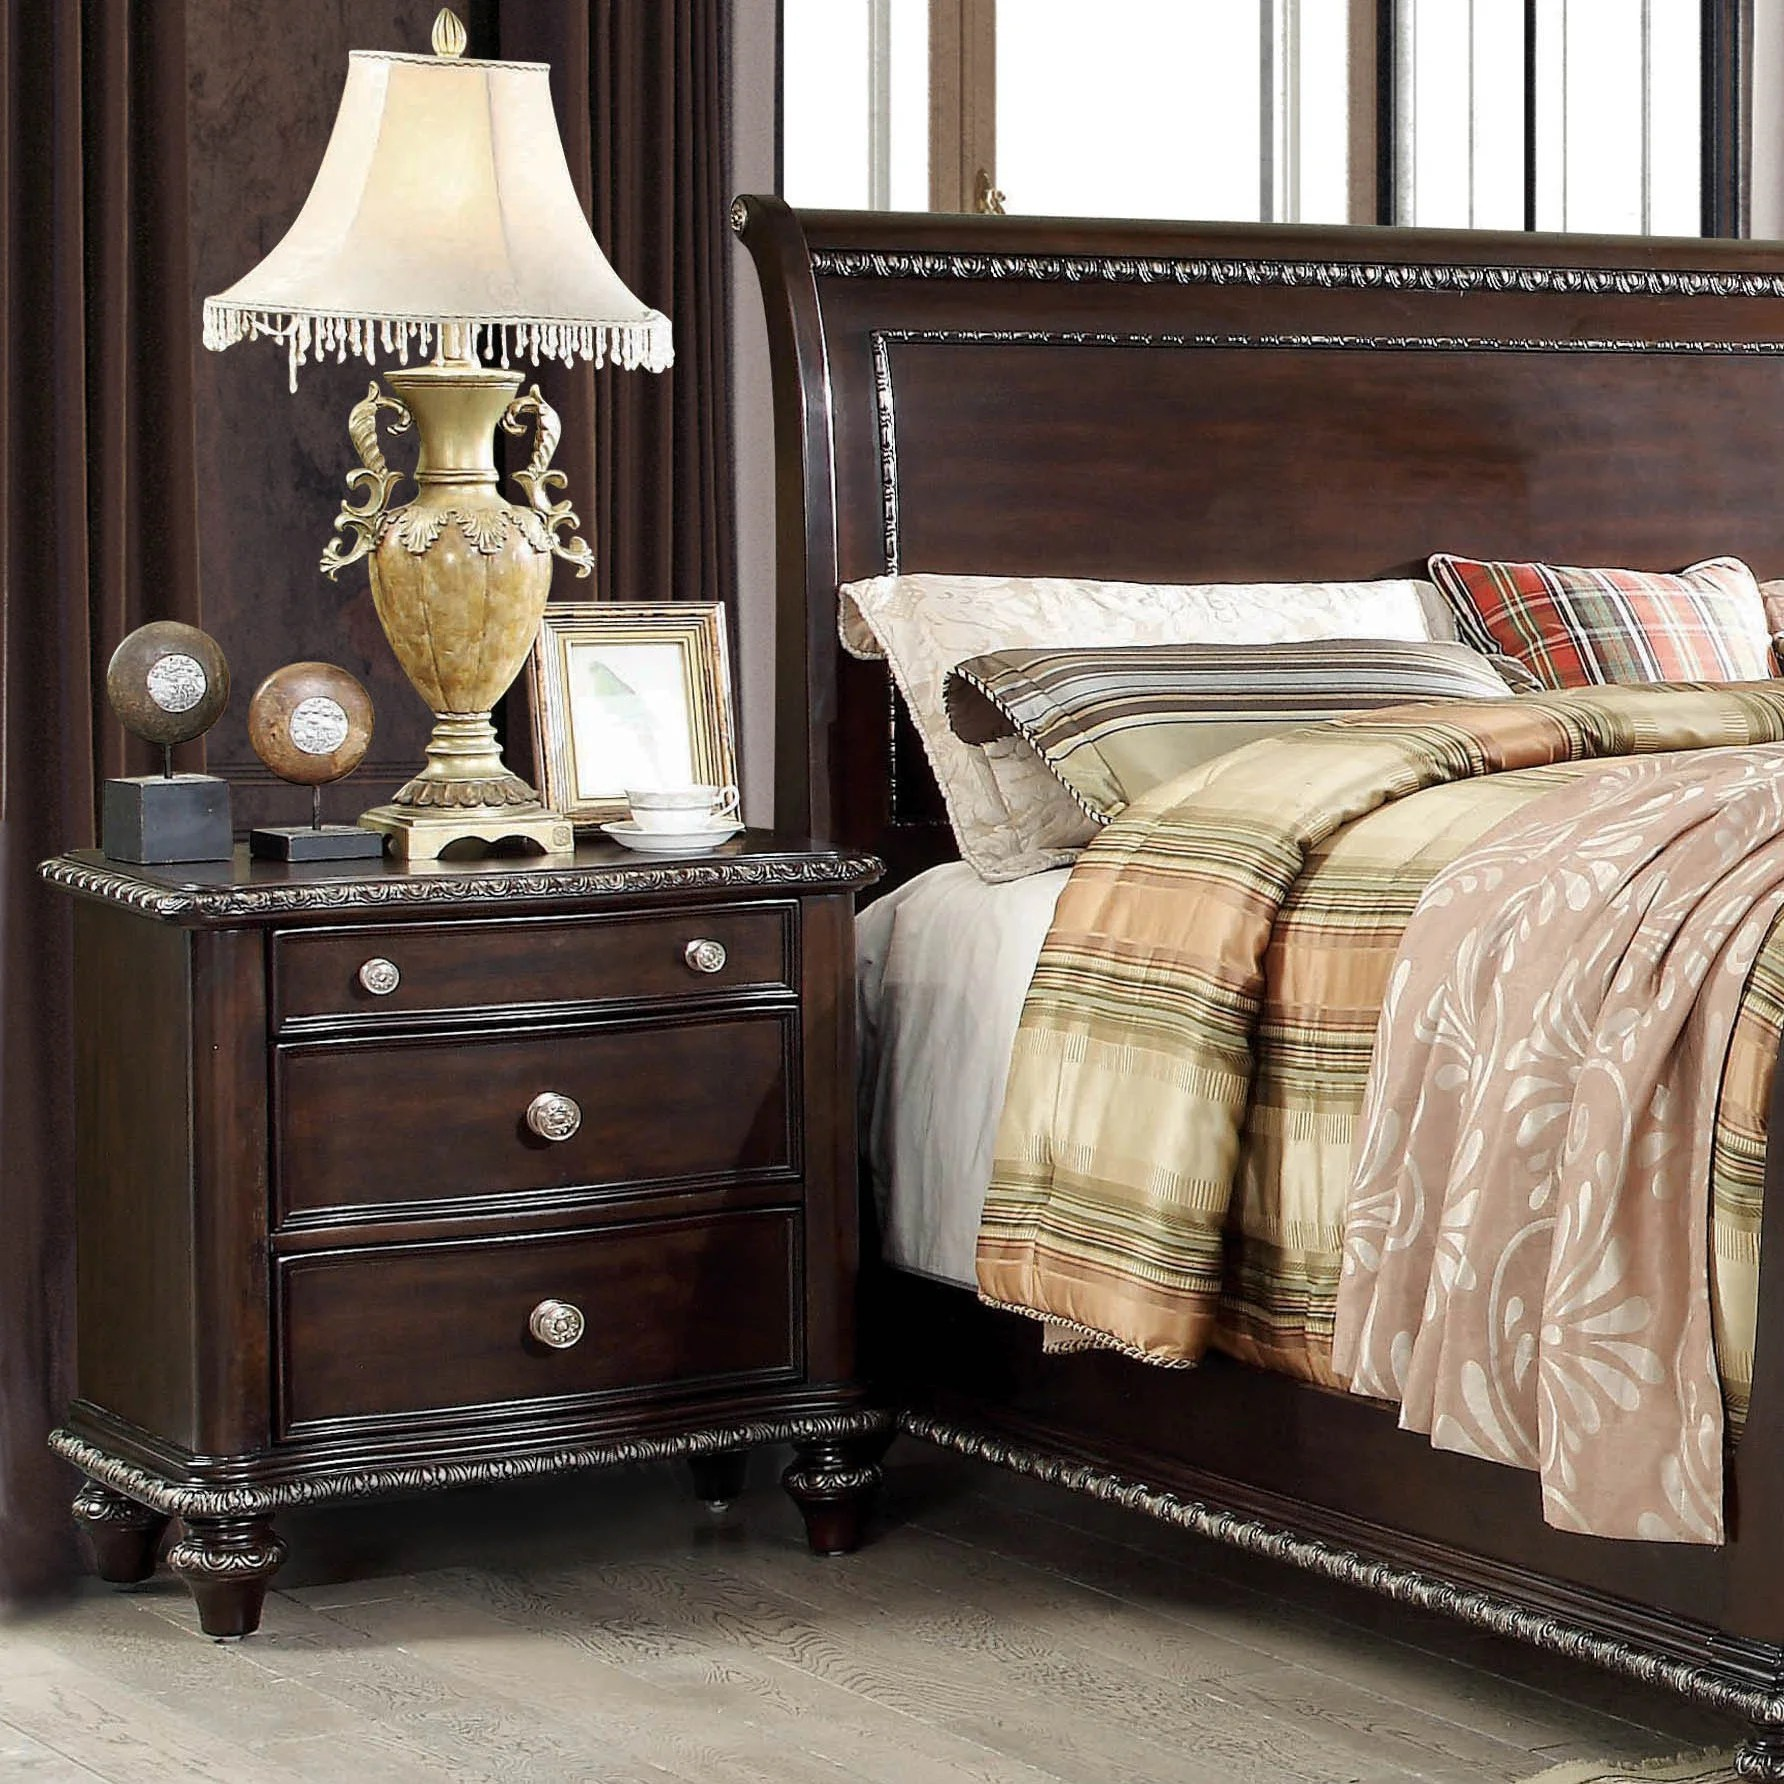 Hunington Furniture Details About Furniture Of America Huntington Traditional 3 Drawer Espresso Nightstand